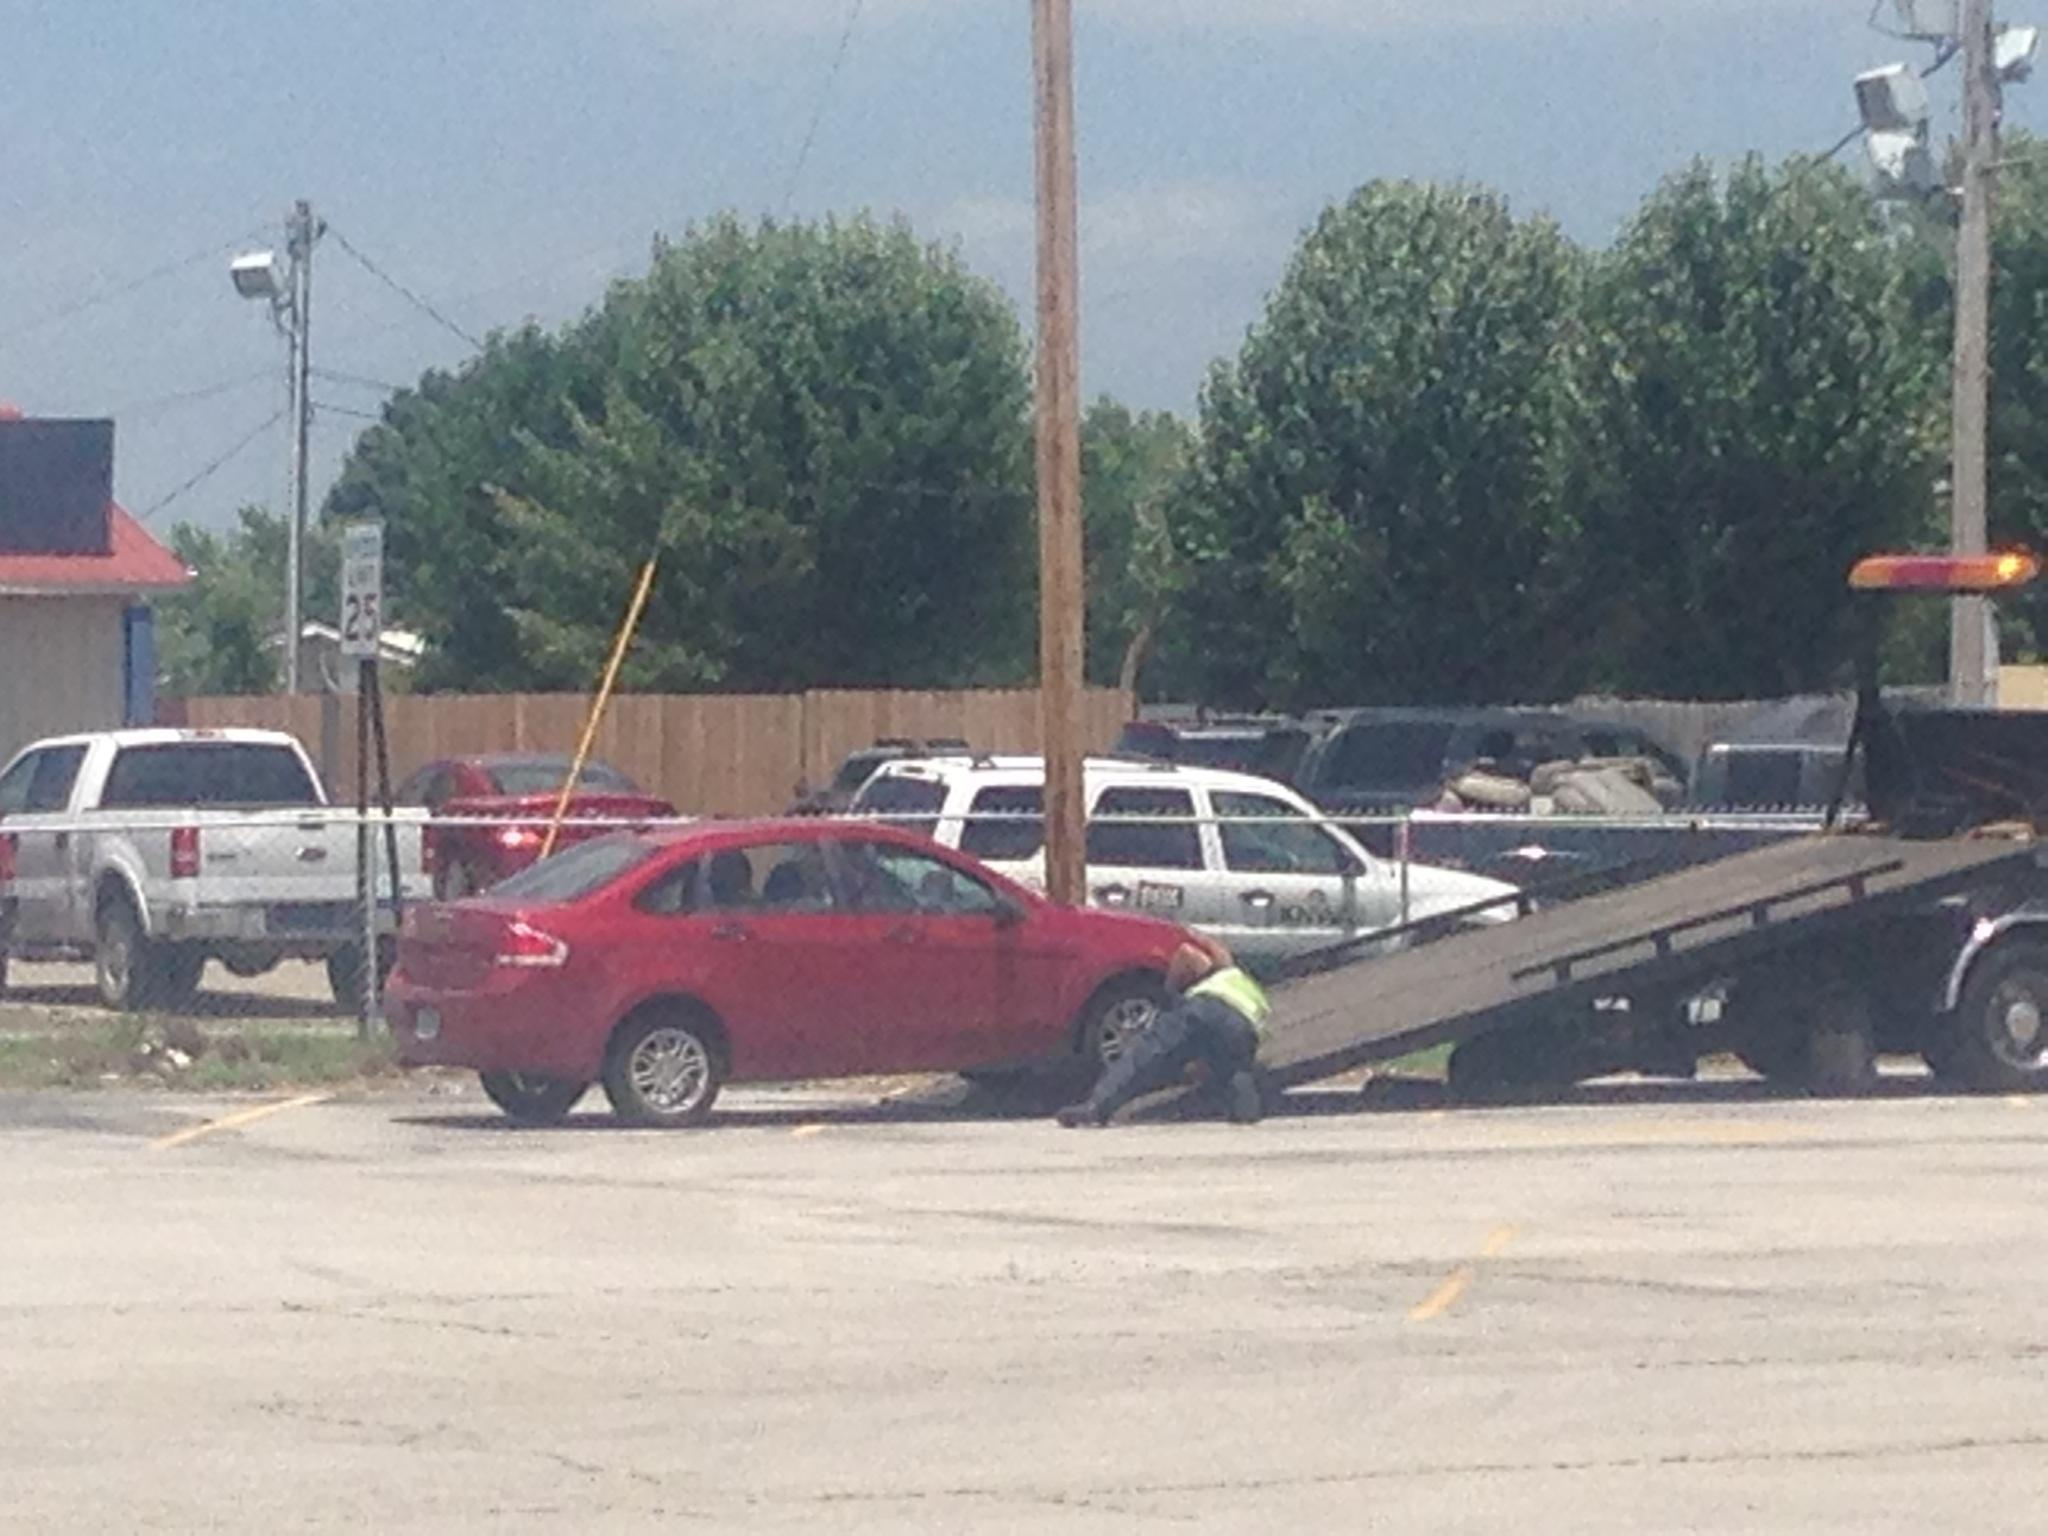 The suspect vehicle being towed following the suspect's arrest.